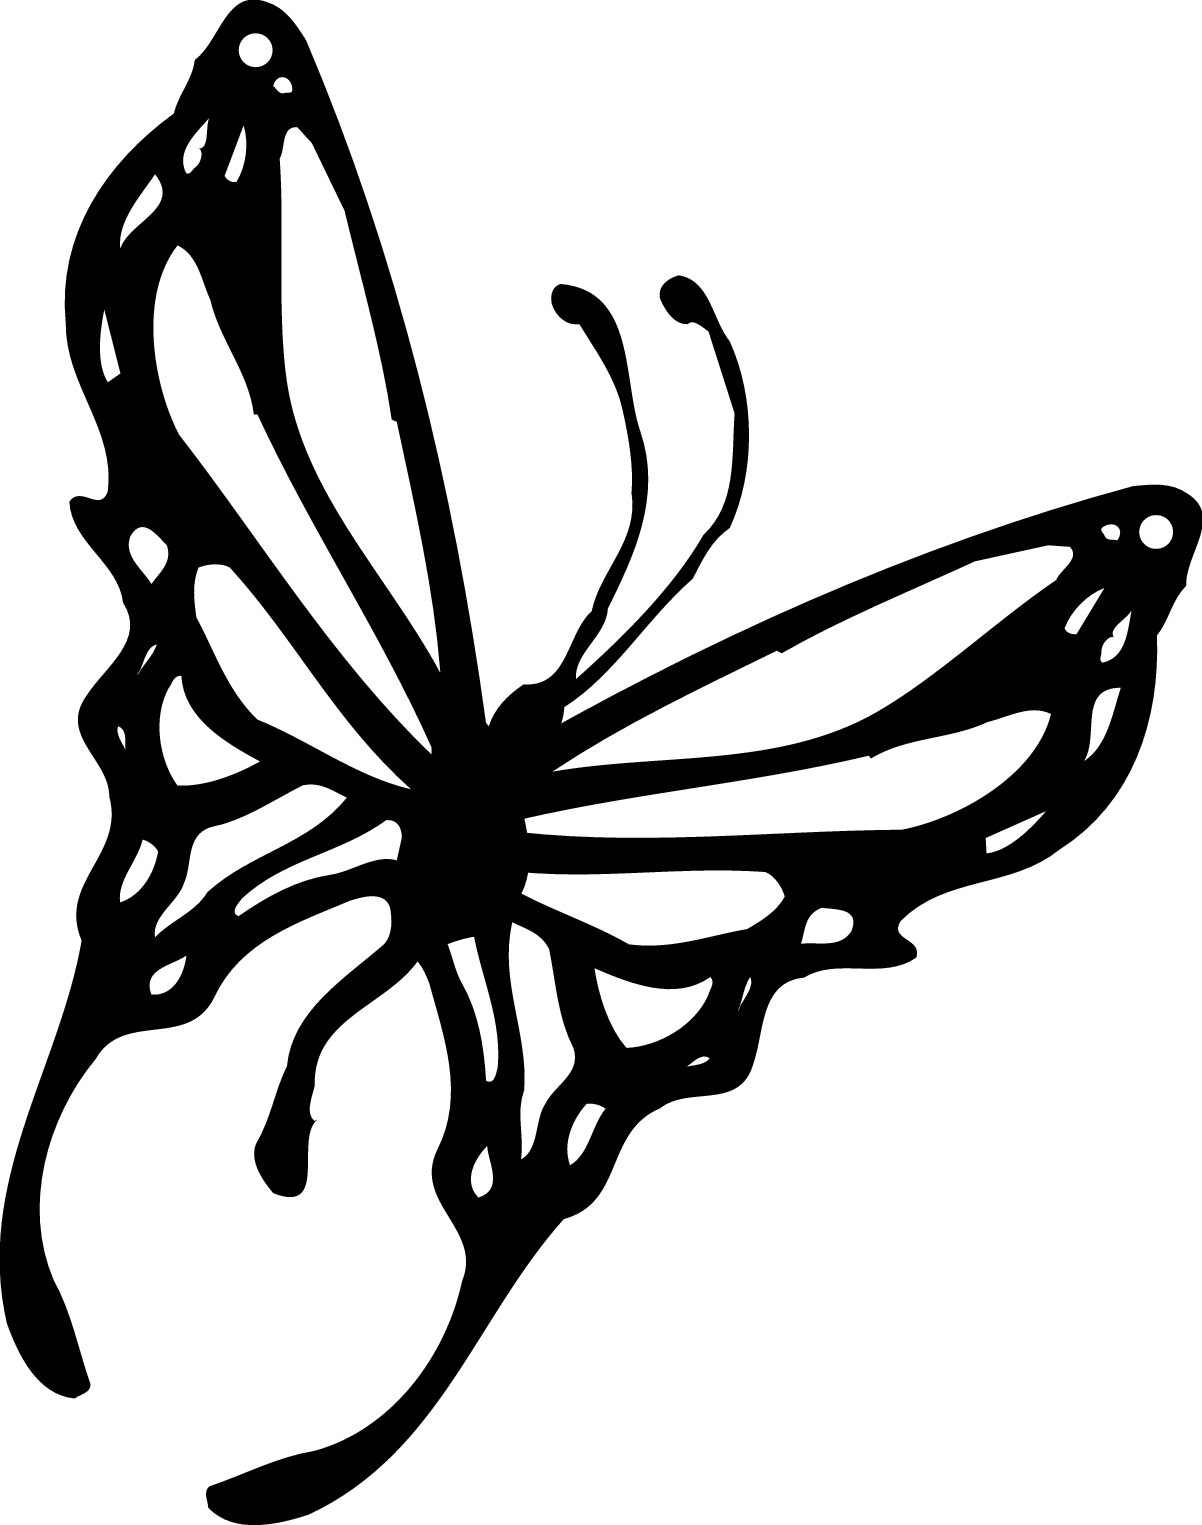 Drawn flying clipart black and white #14